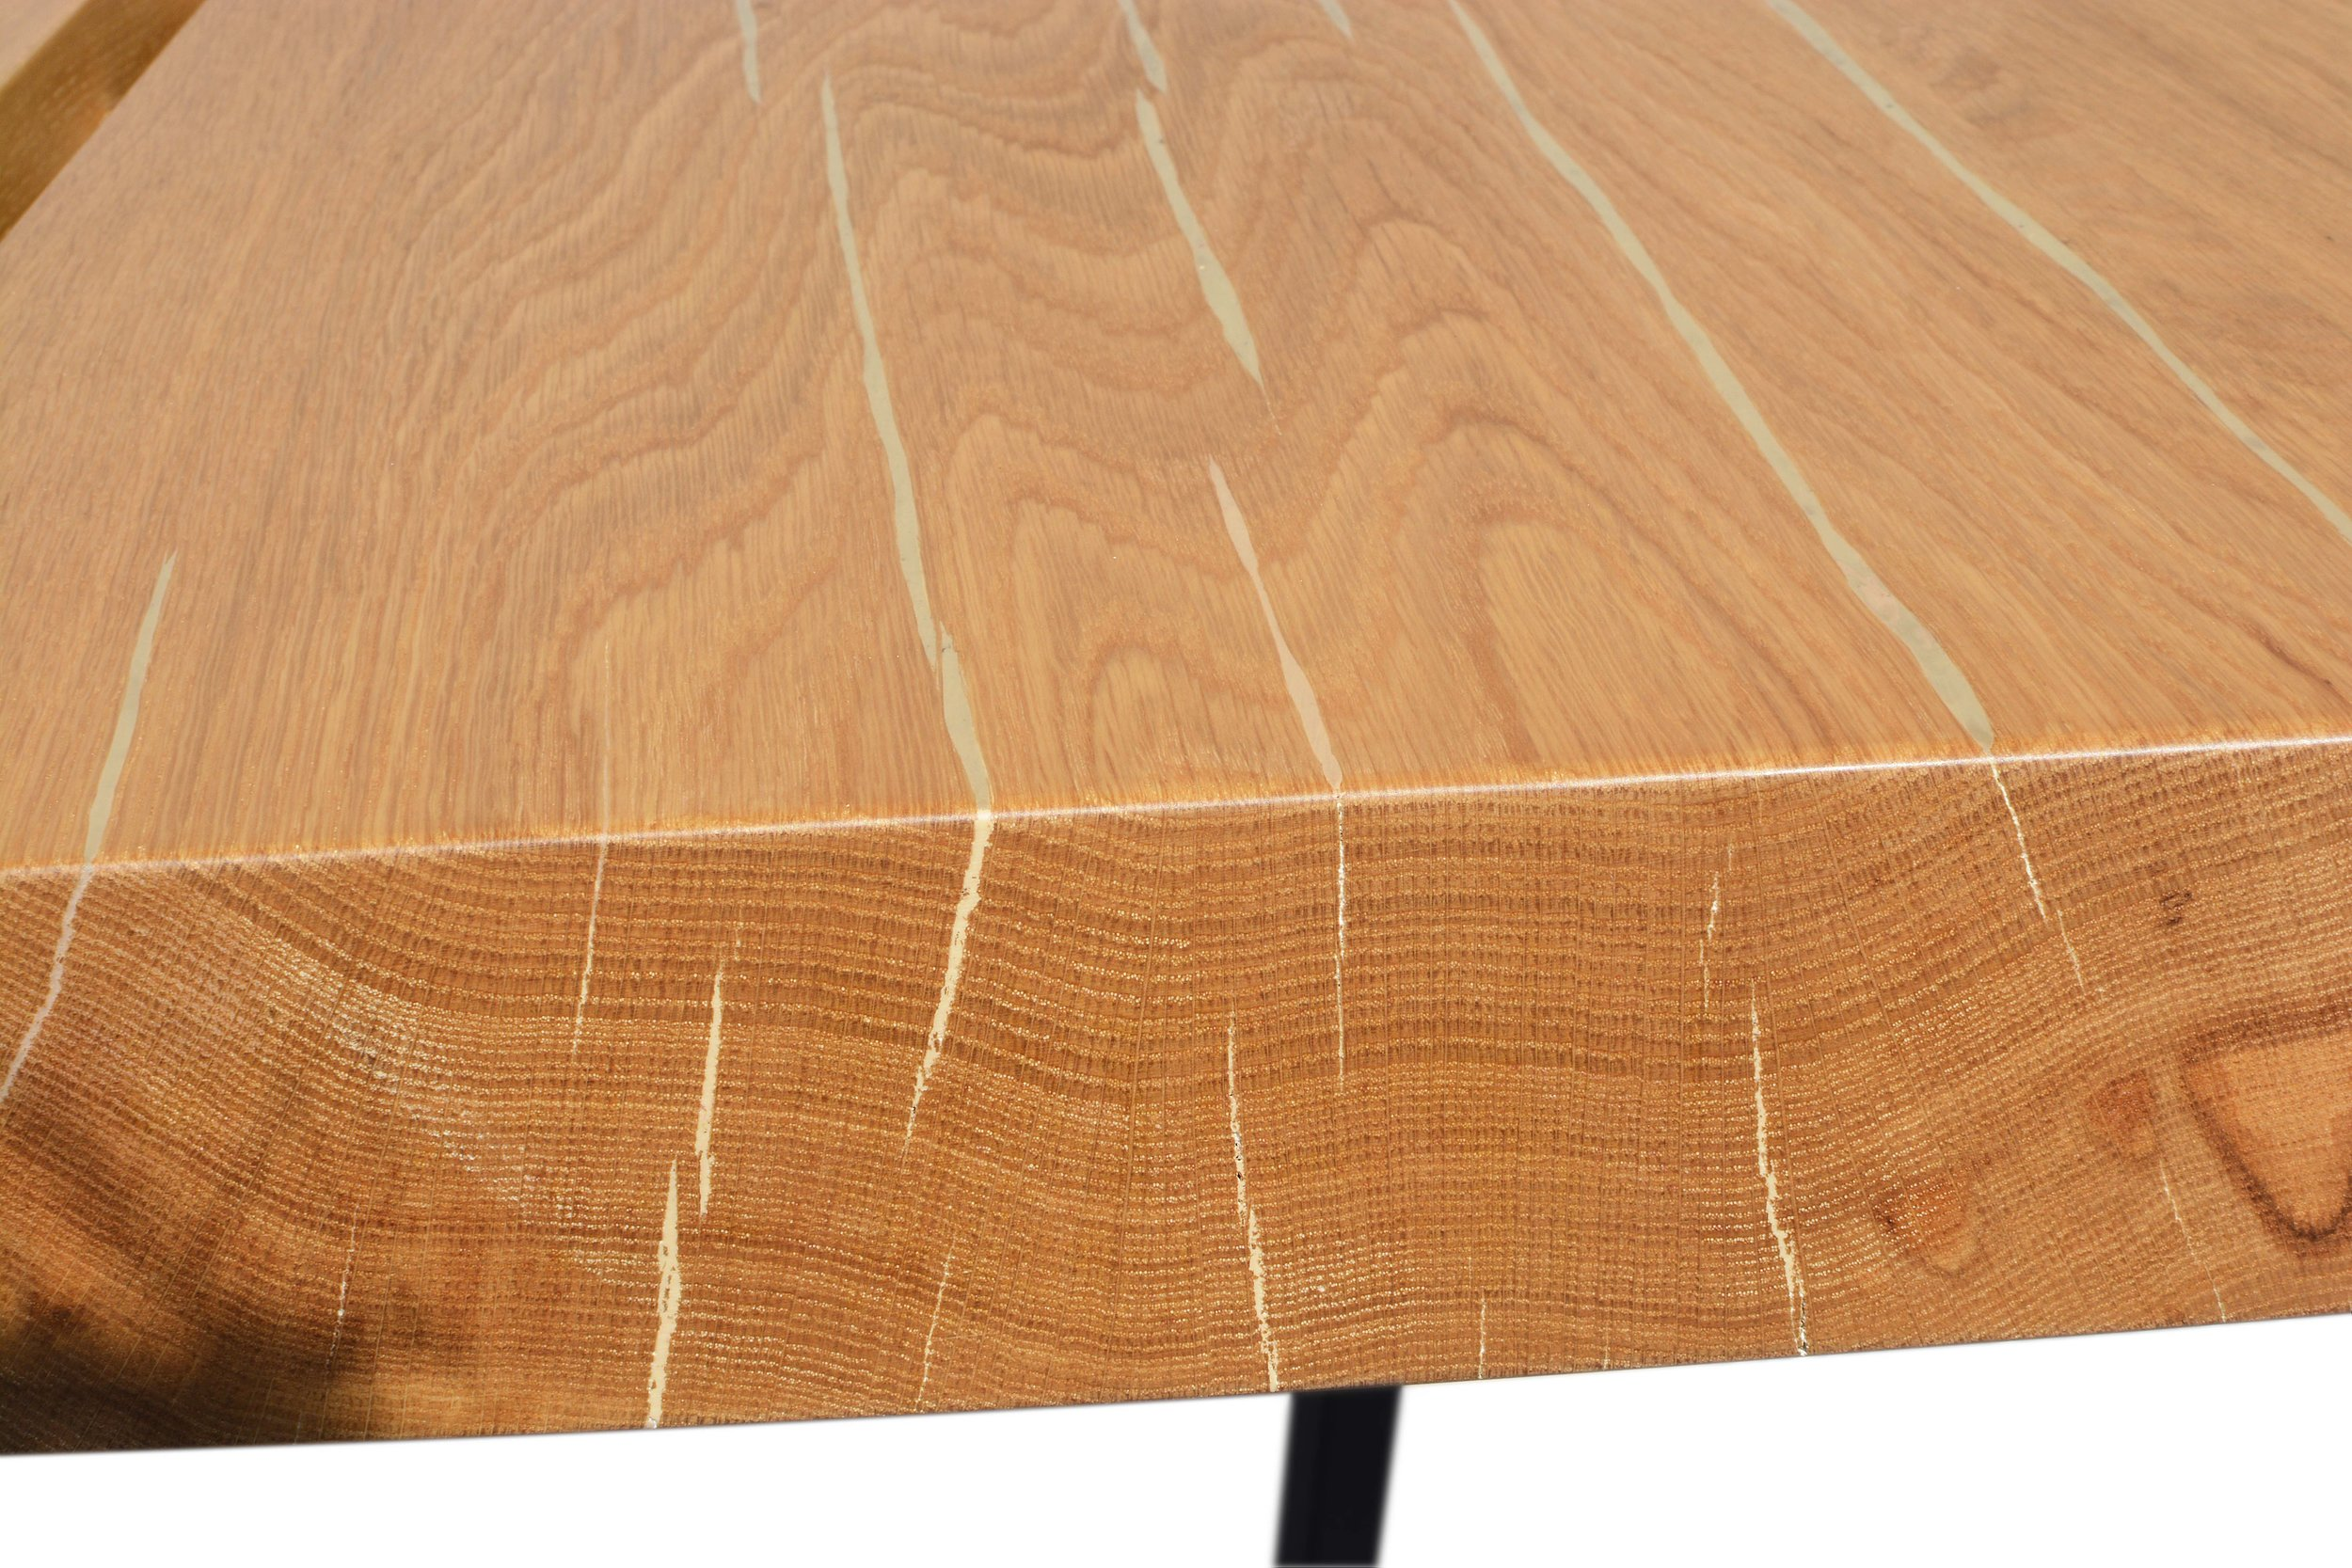 Etz & Steel Sawyer Live Edge Table Close Up 1.JPG